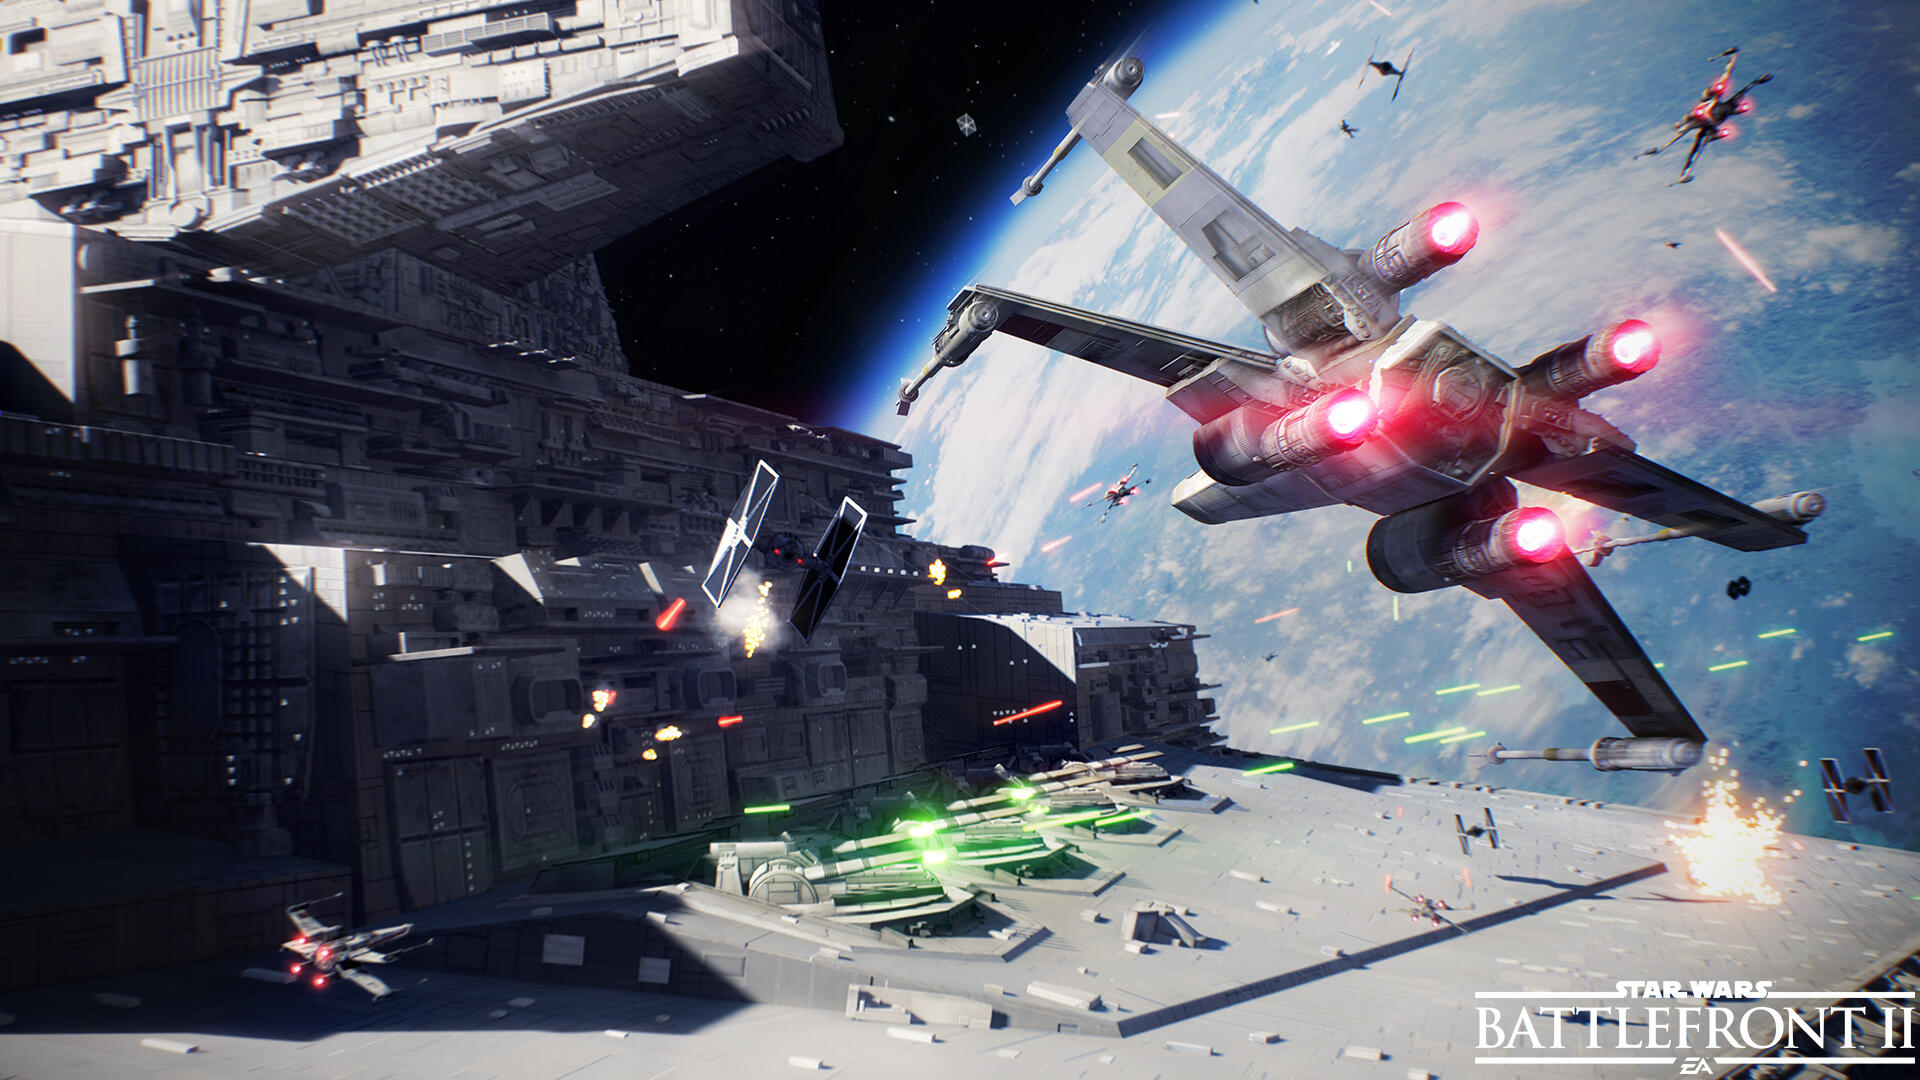 Star Wars Battlefront 2 Starfighter Assault Tips - How to Dominate in Space Battles